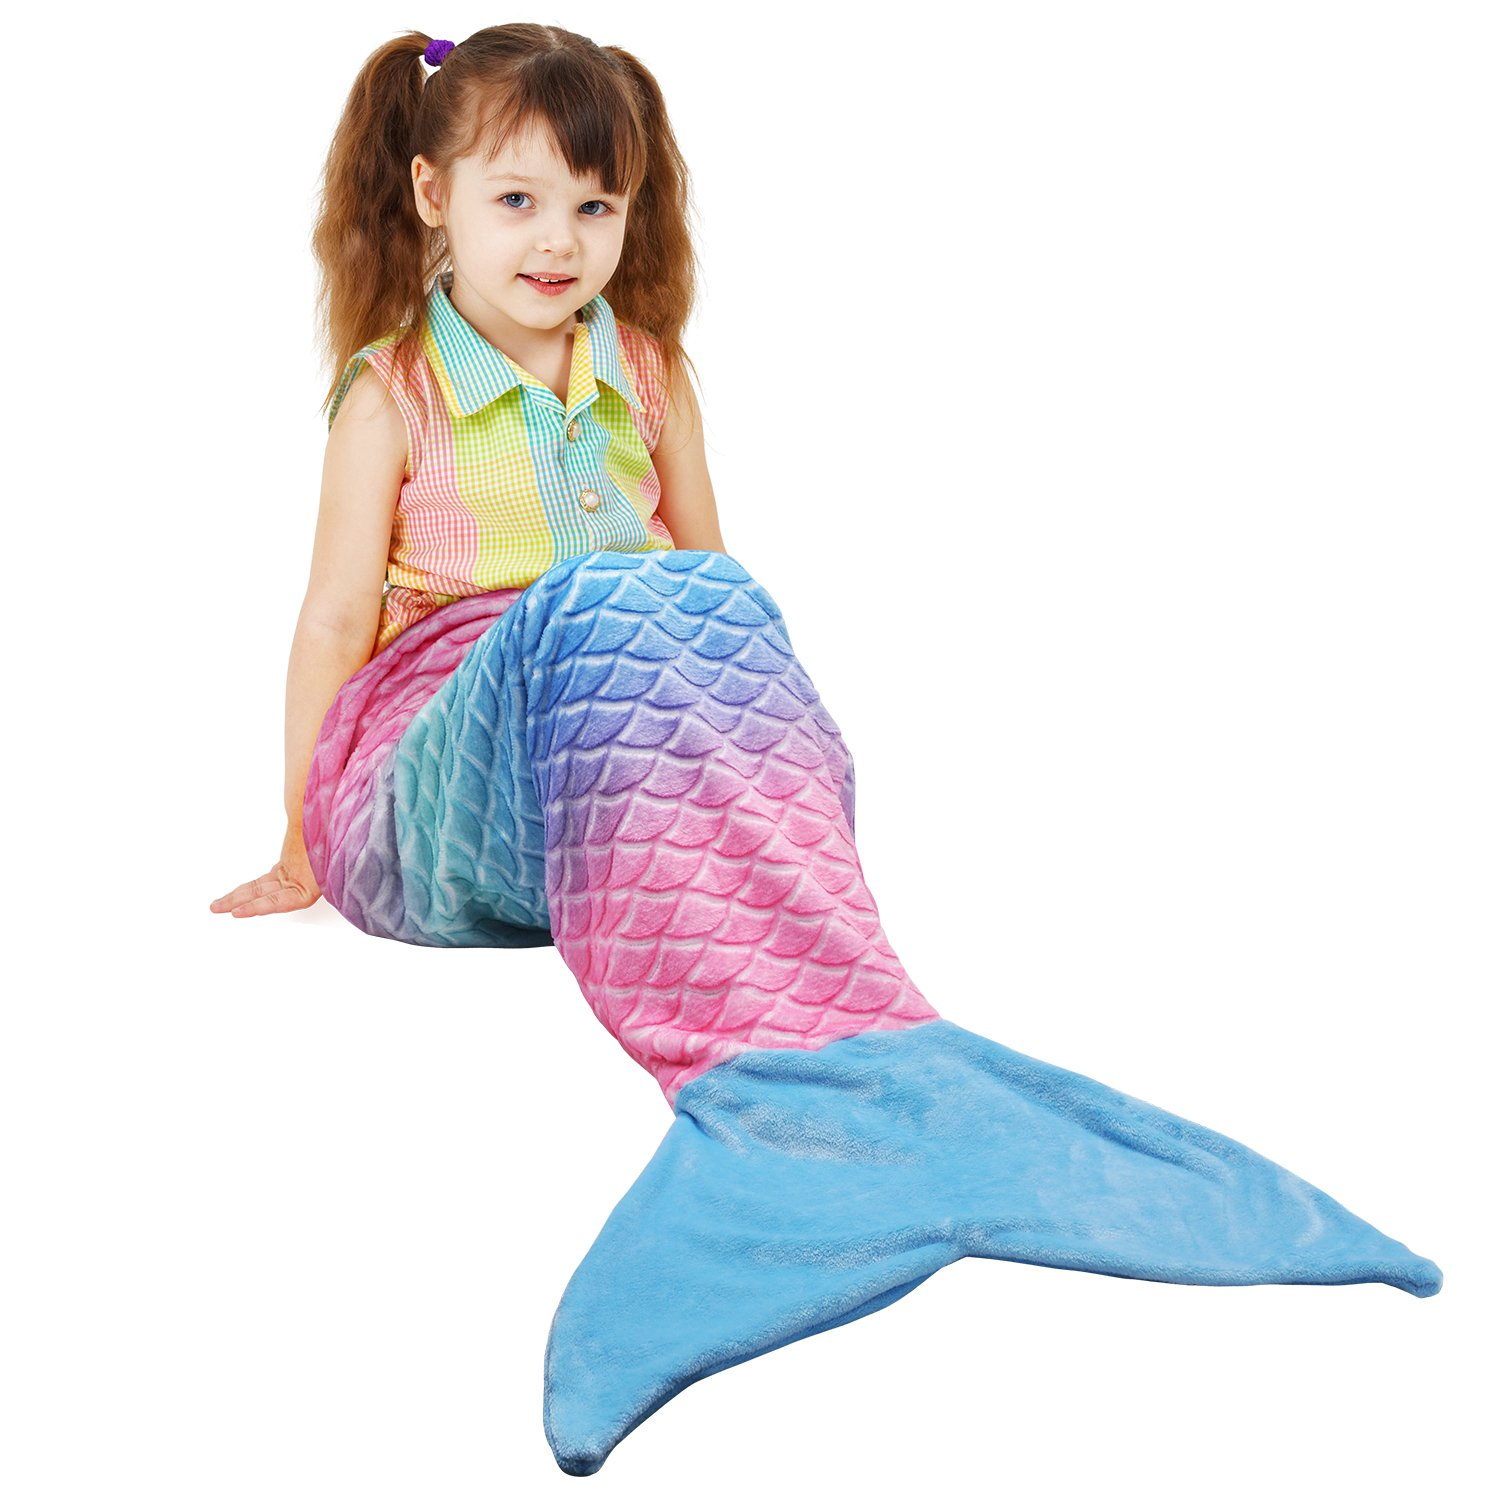 Catalonia Mermaid Tail Plush Flannel Blanket for Teen Child Kids, Soft Warm Fuzzy Micro Fleece All Seasons Sleeping Blanket Classic Scale Pattern 61'' x 19'' Rainbow Ombre